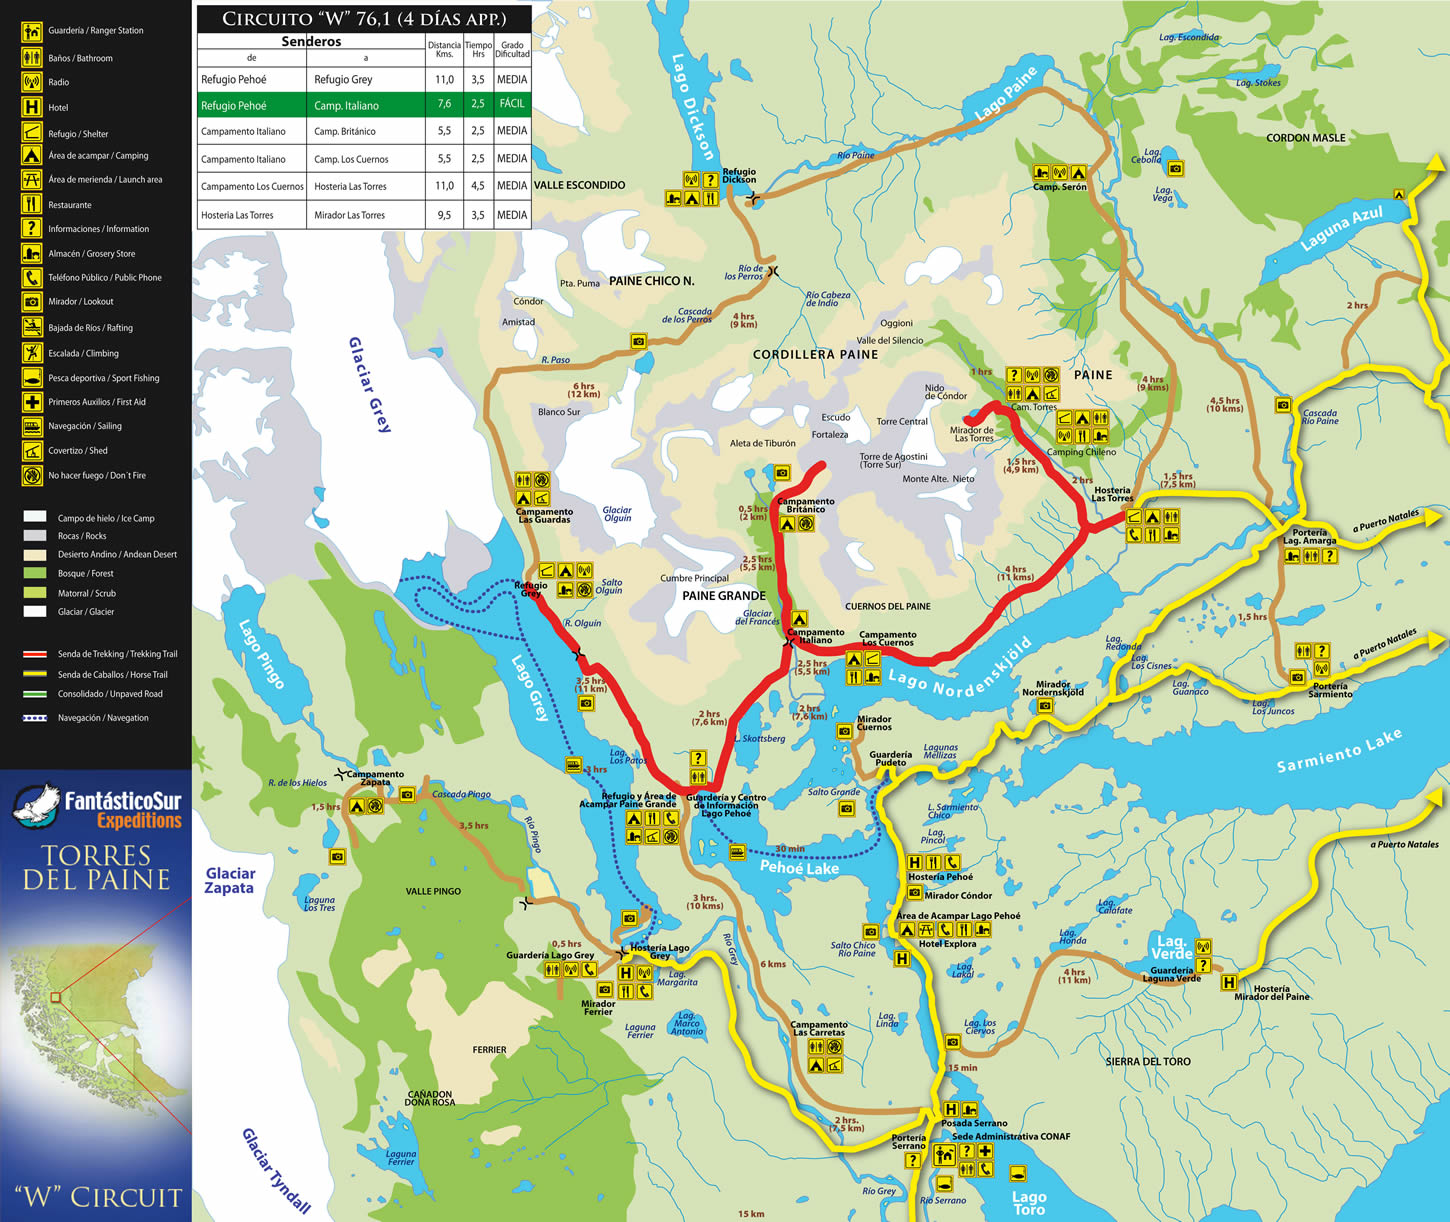 An Excelent Map Of Torres Del Paine Showing Refugios And The